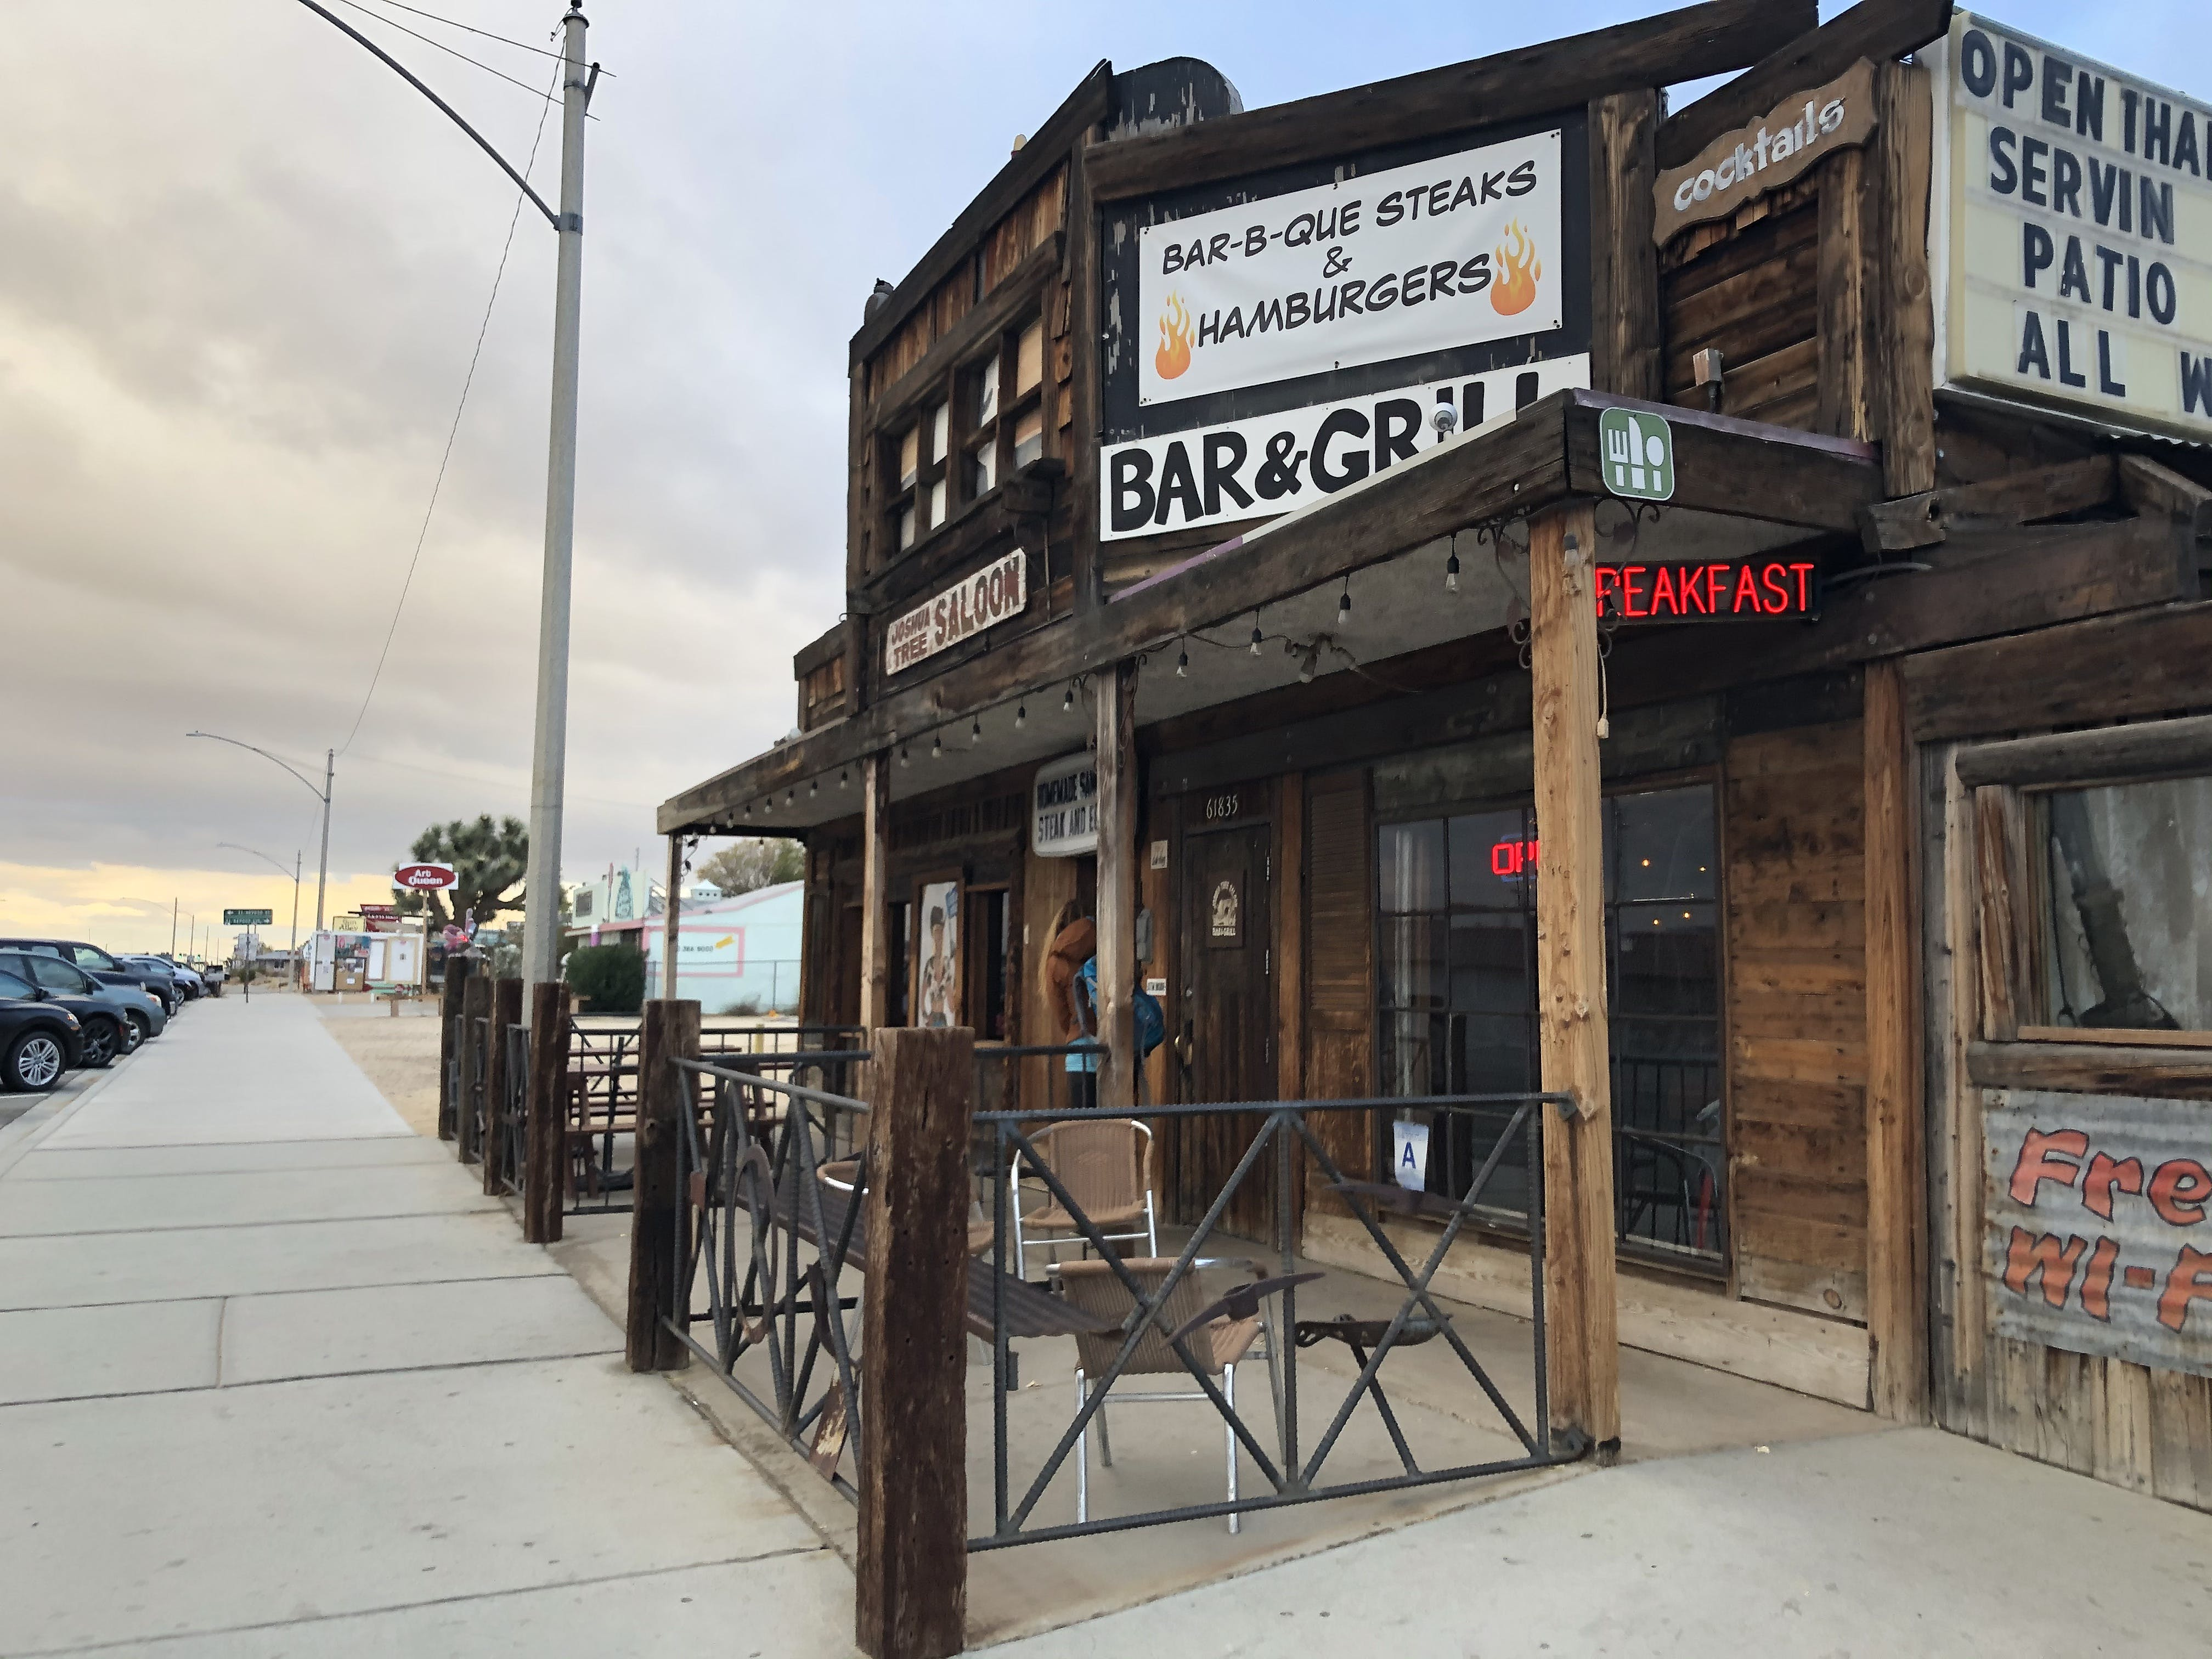 Where to eat and drink in Joshua Tree